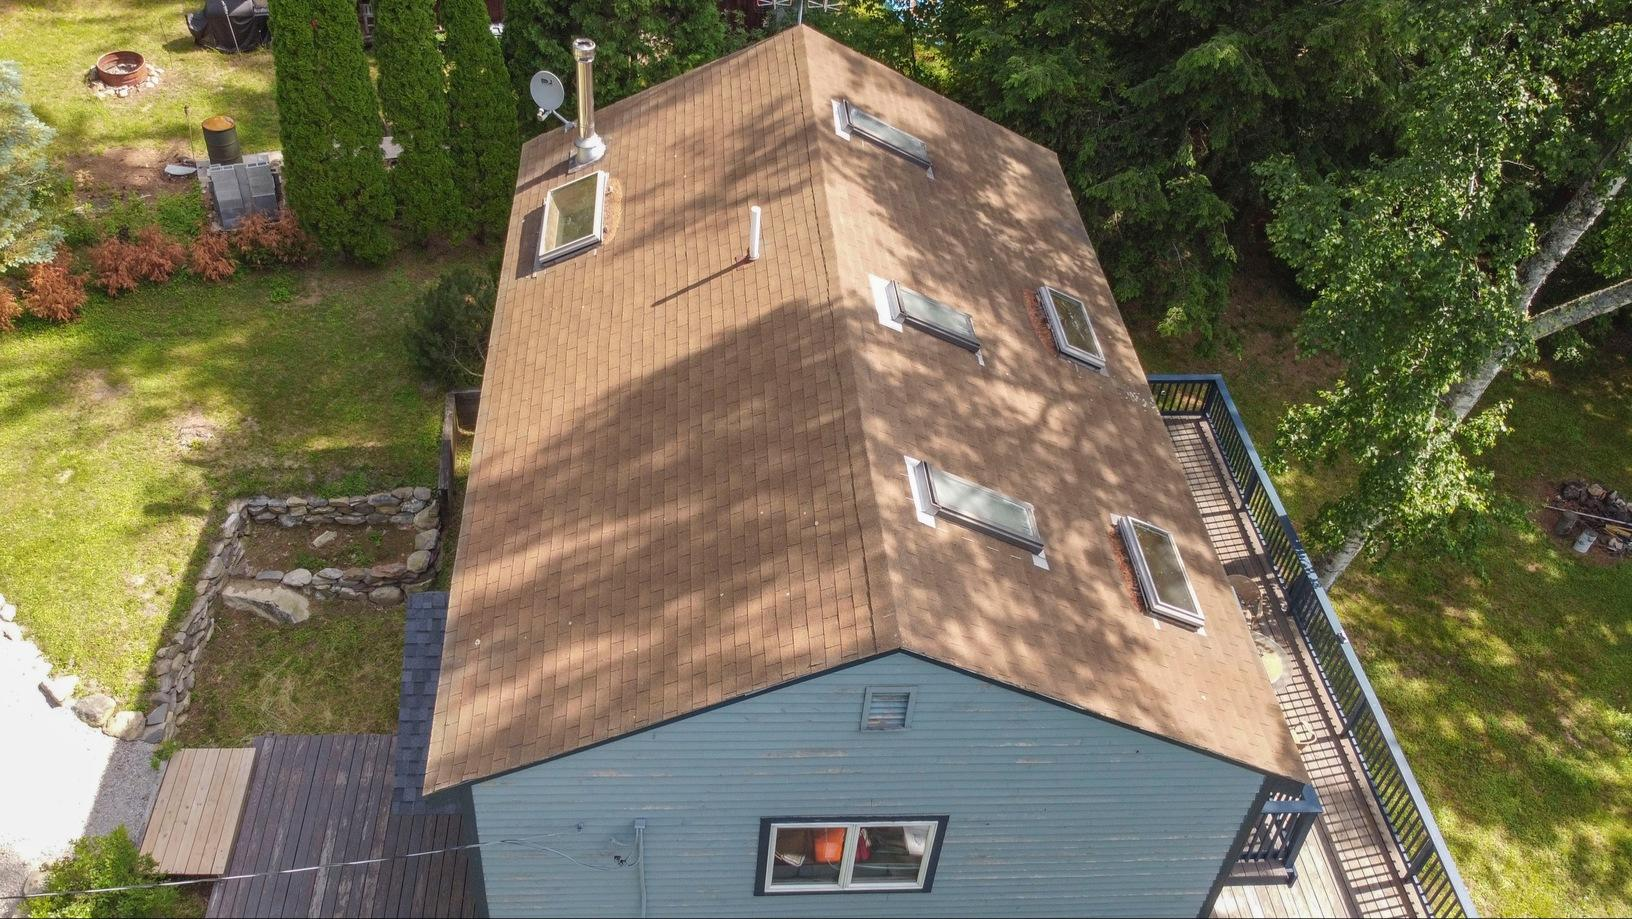 Klaus Total Roof Replacement with IKO Castle Grey Dynasty Shingles - Before Photo